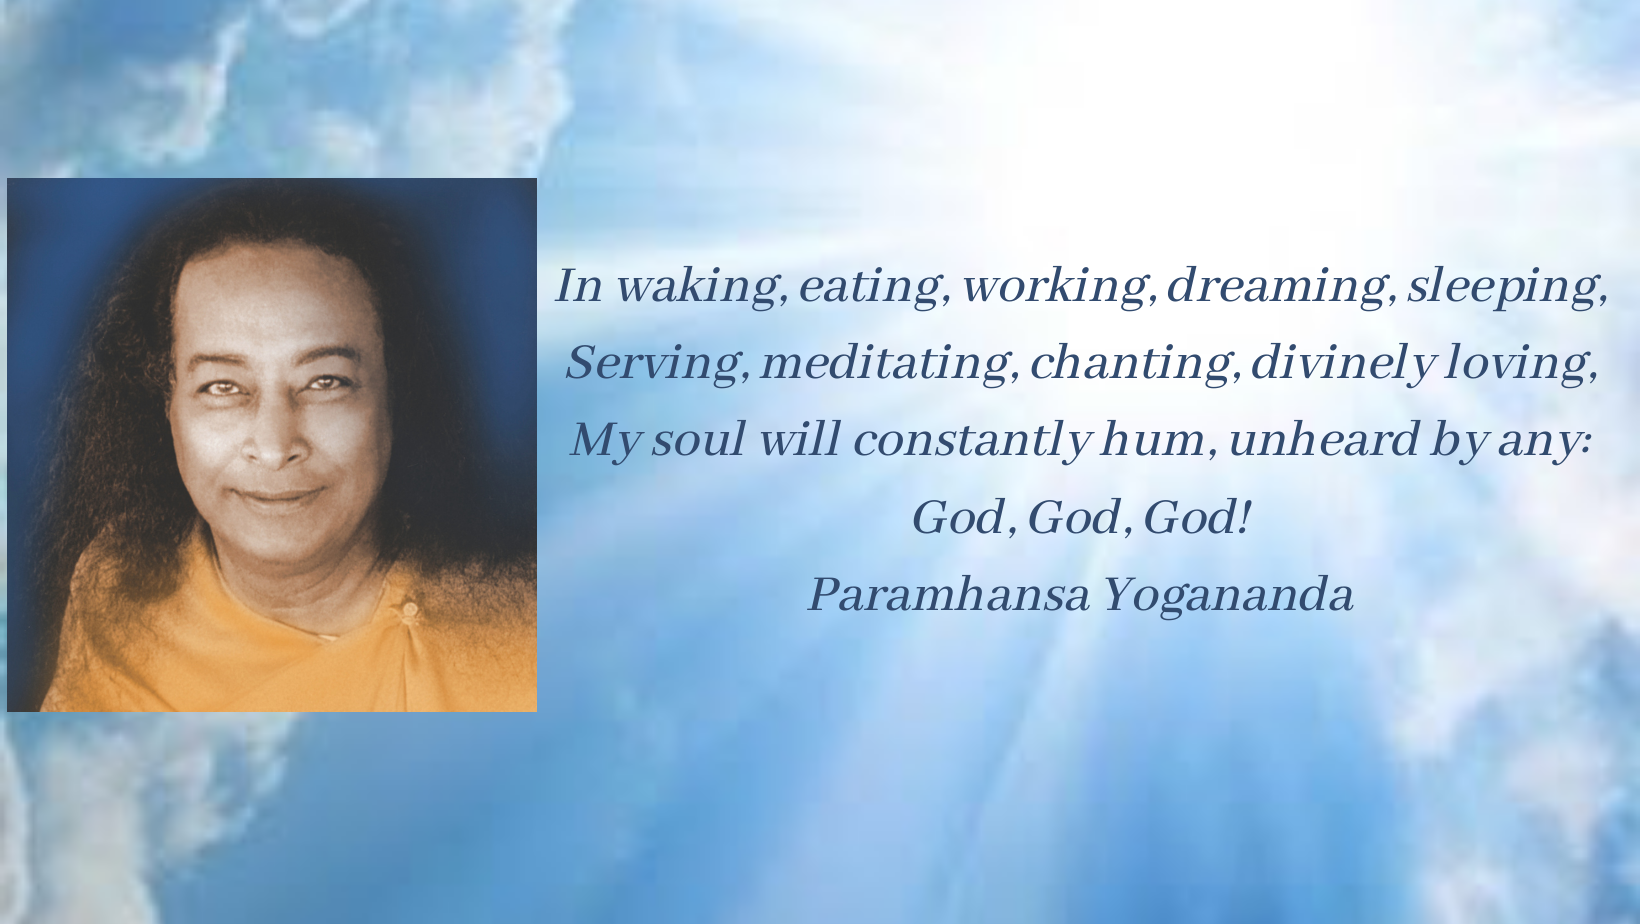 In waking, eating, working, dreaming, sleeping, Serving, meditating, chanting, divinely loving, My soul will constantly hum, unheard by any_ God, God, God! Paramhansa Yogananda